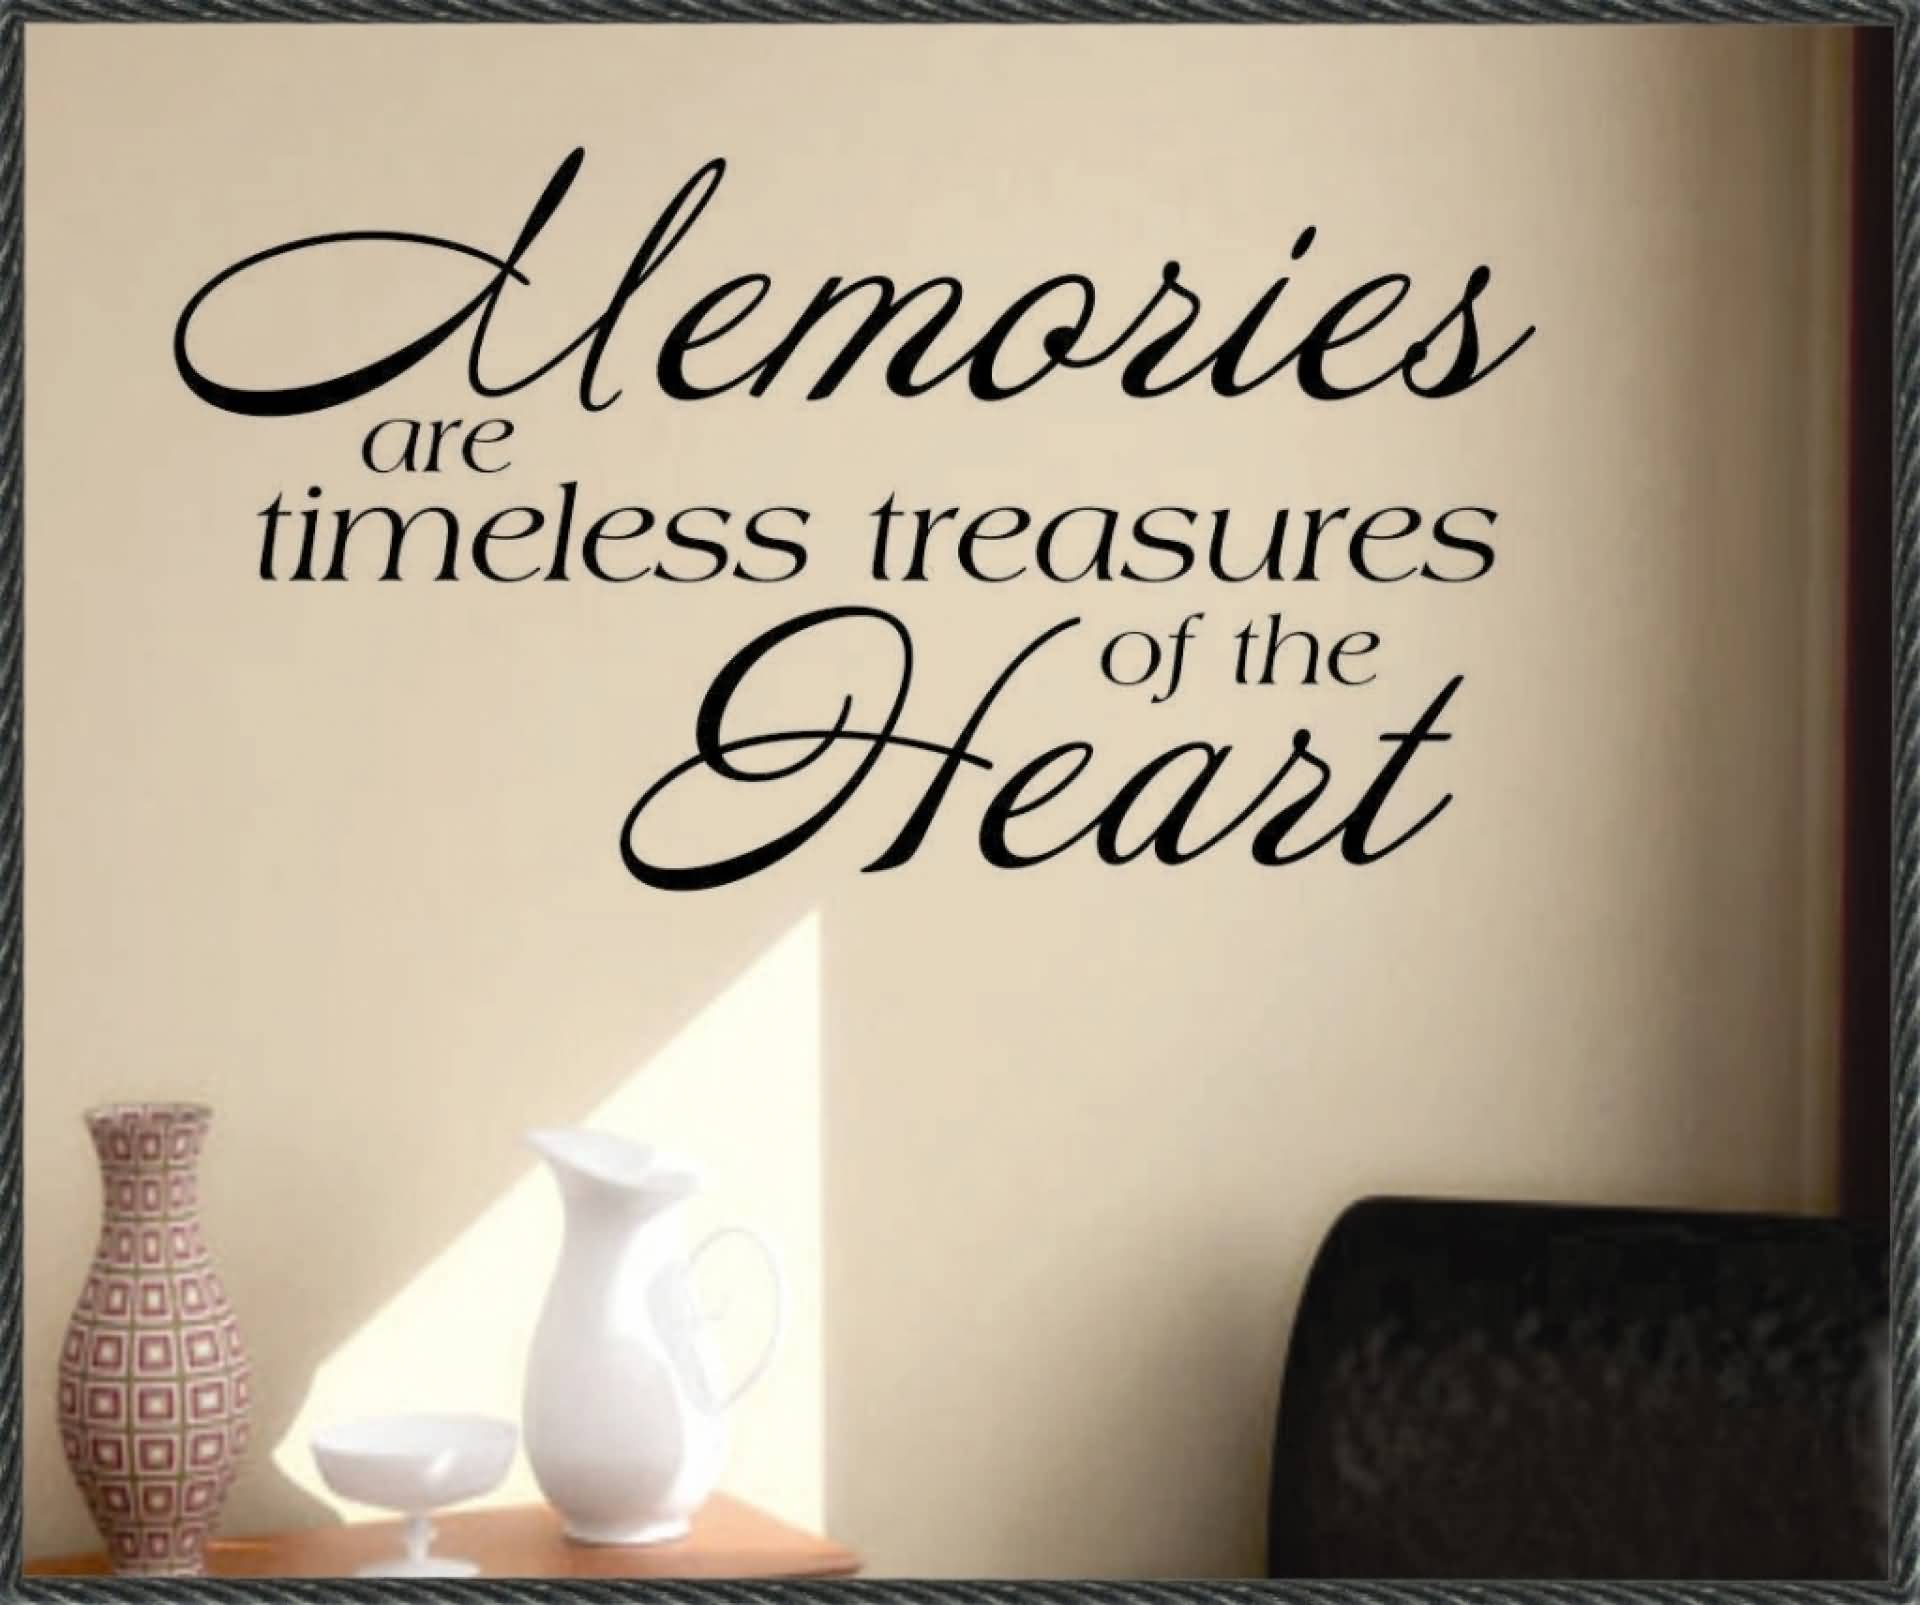 In Remembrance Quotes Of A Loved One 19